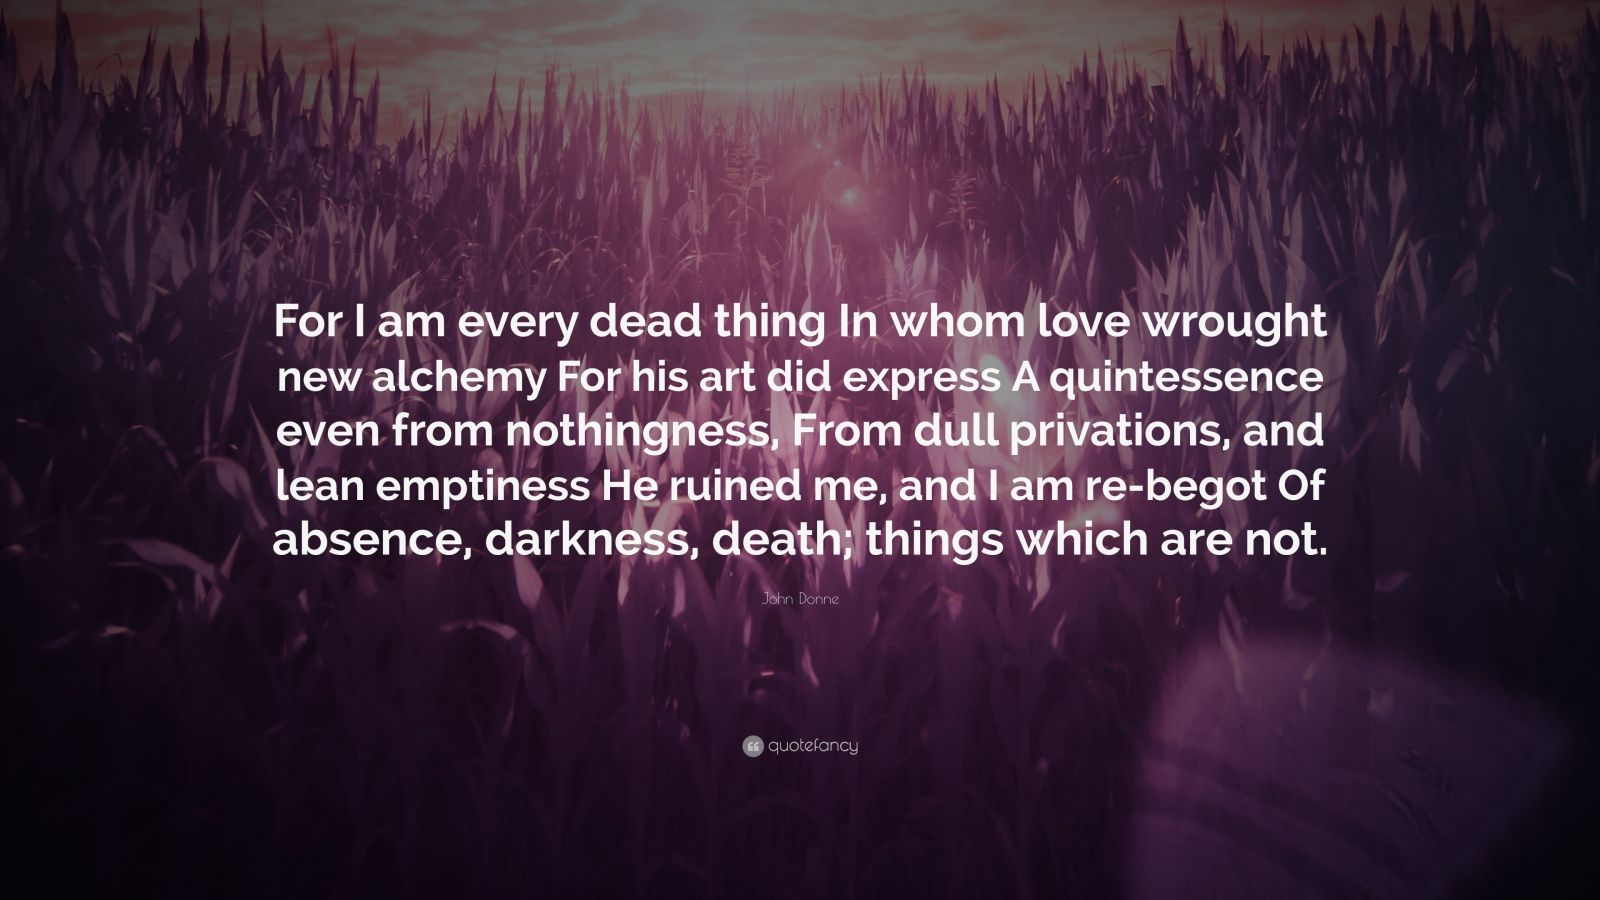 an analysis of loves alchemy by john donne Free essays → literary analysis → love's alchemy by donne → buy essay  john donne, together with ben  comapring wretch with a person who loves.